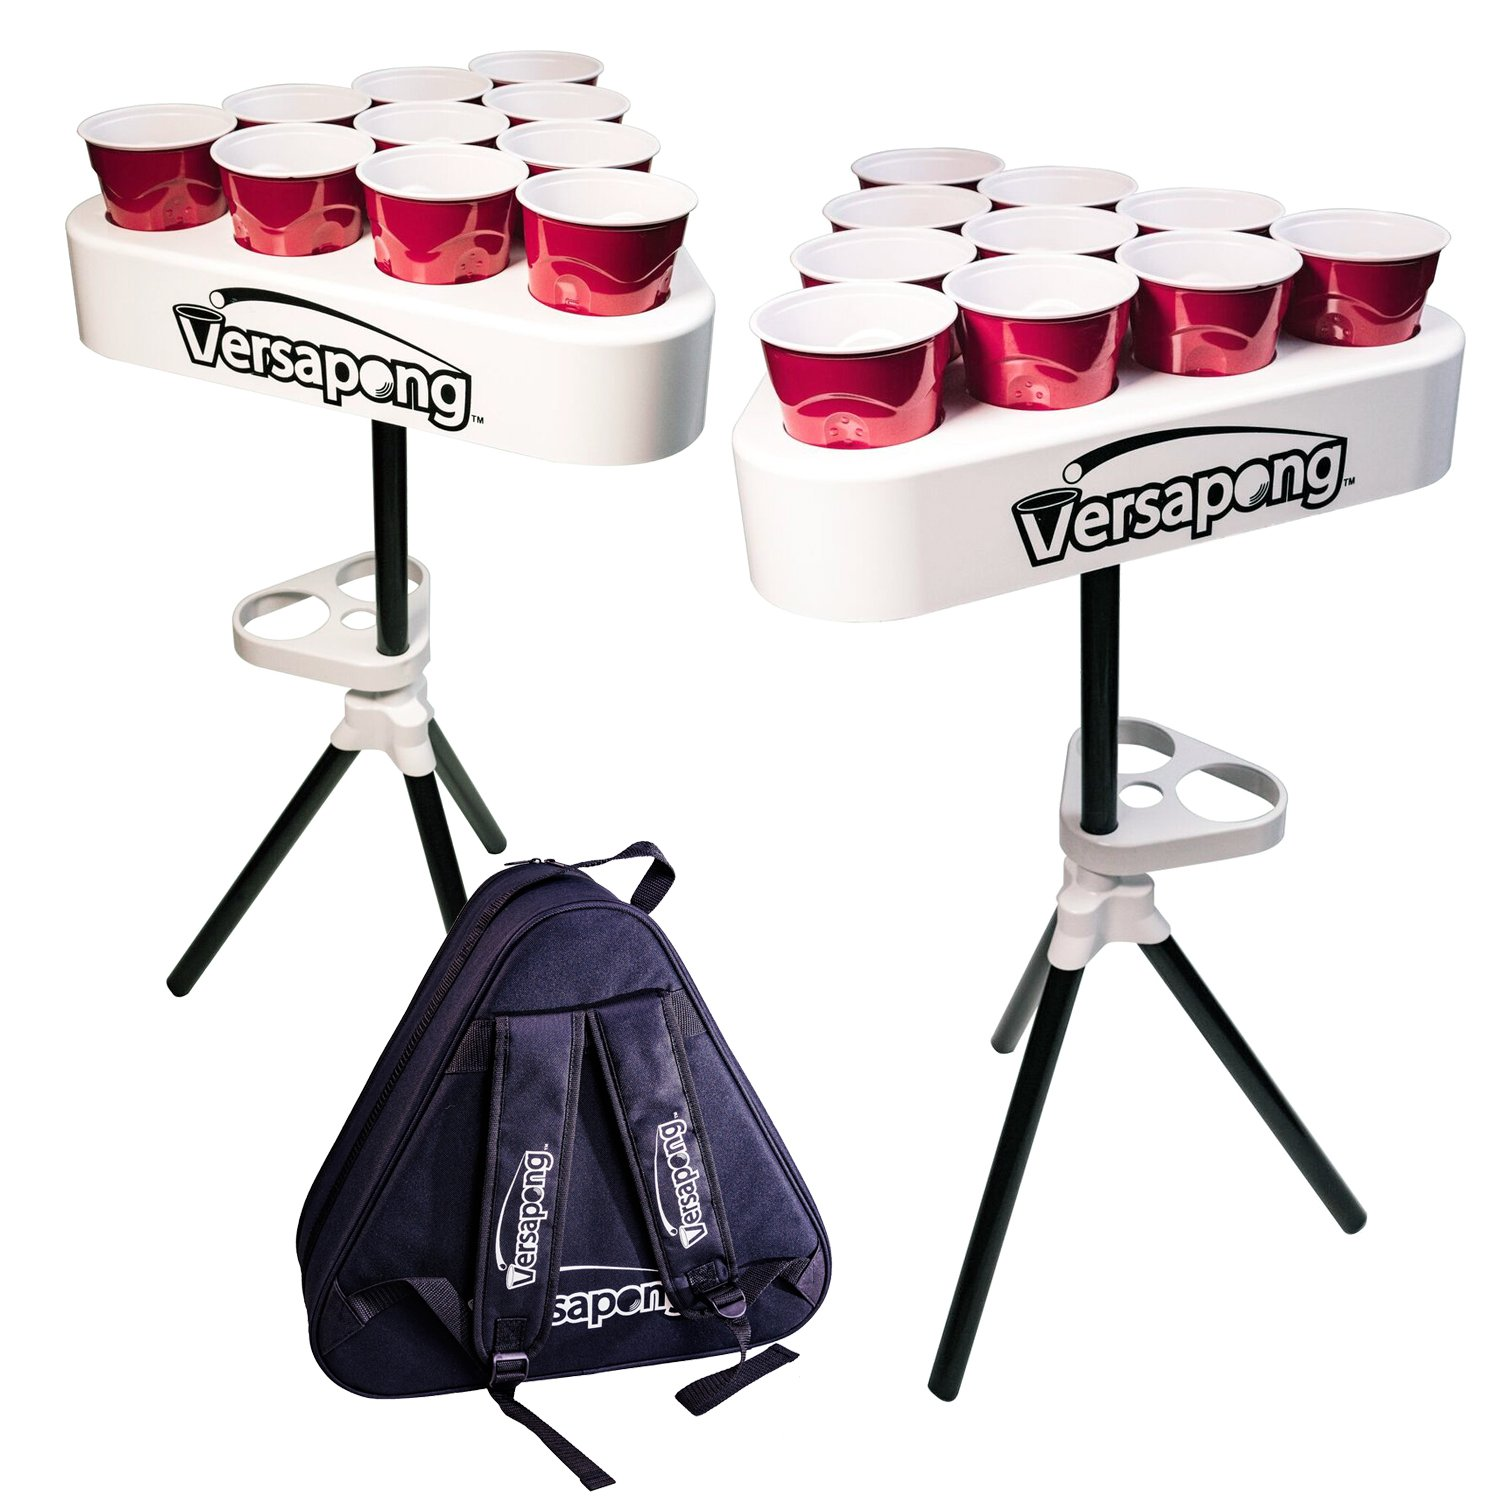 Versapong Portable Beer Pong Table/Tailgate Game with Backpack Carry Case and Balls by Versapong